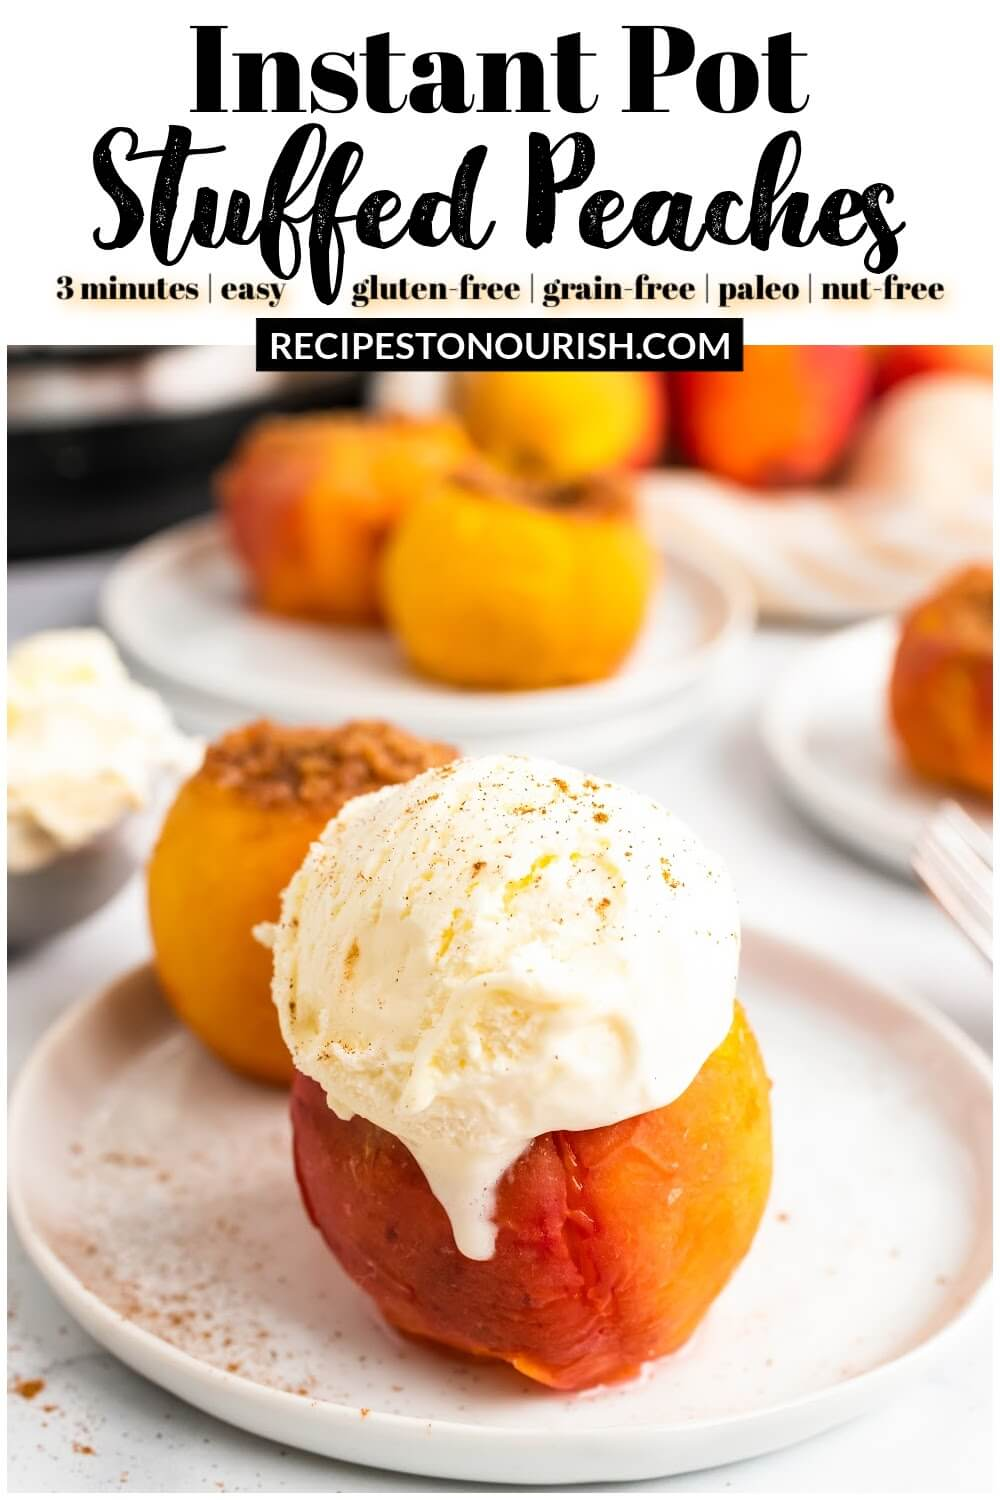 Three plates with cooked stuffed peaches, one topped with a scoop of vanilla ice cream dusted with cinnamon, sitting on a plate, next to an ice cream scooper full of ice cream, sitting next to an Instant Pot with the text Instant Pot Stuffed Peaches.